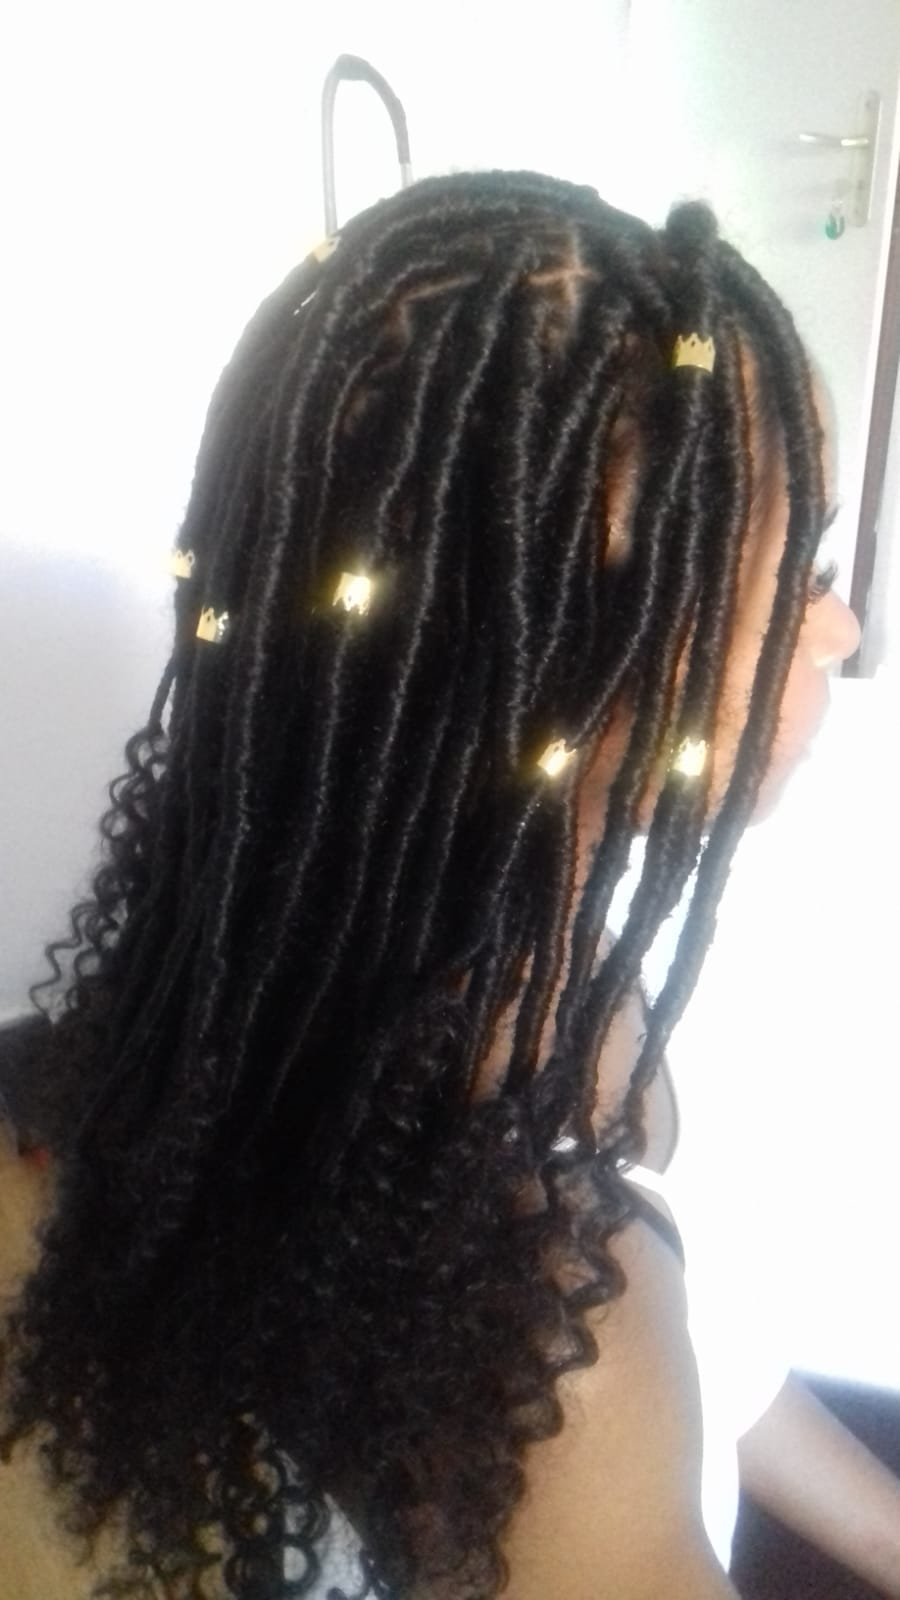 salon de coiffure afro tresse tresses box braids crochet braids vanilles tissages paris 75 77 78 91 92 93 94 95 NWRYXECA